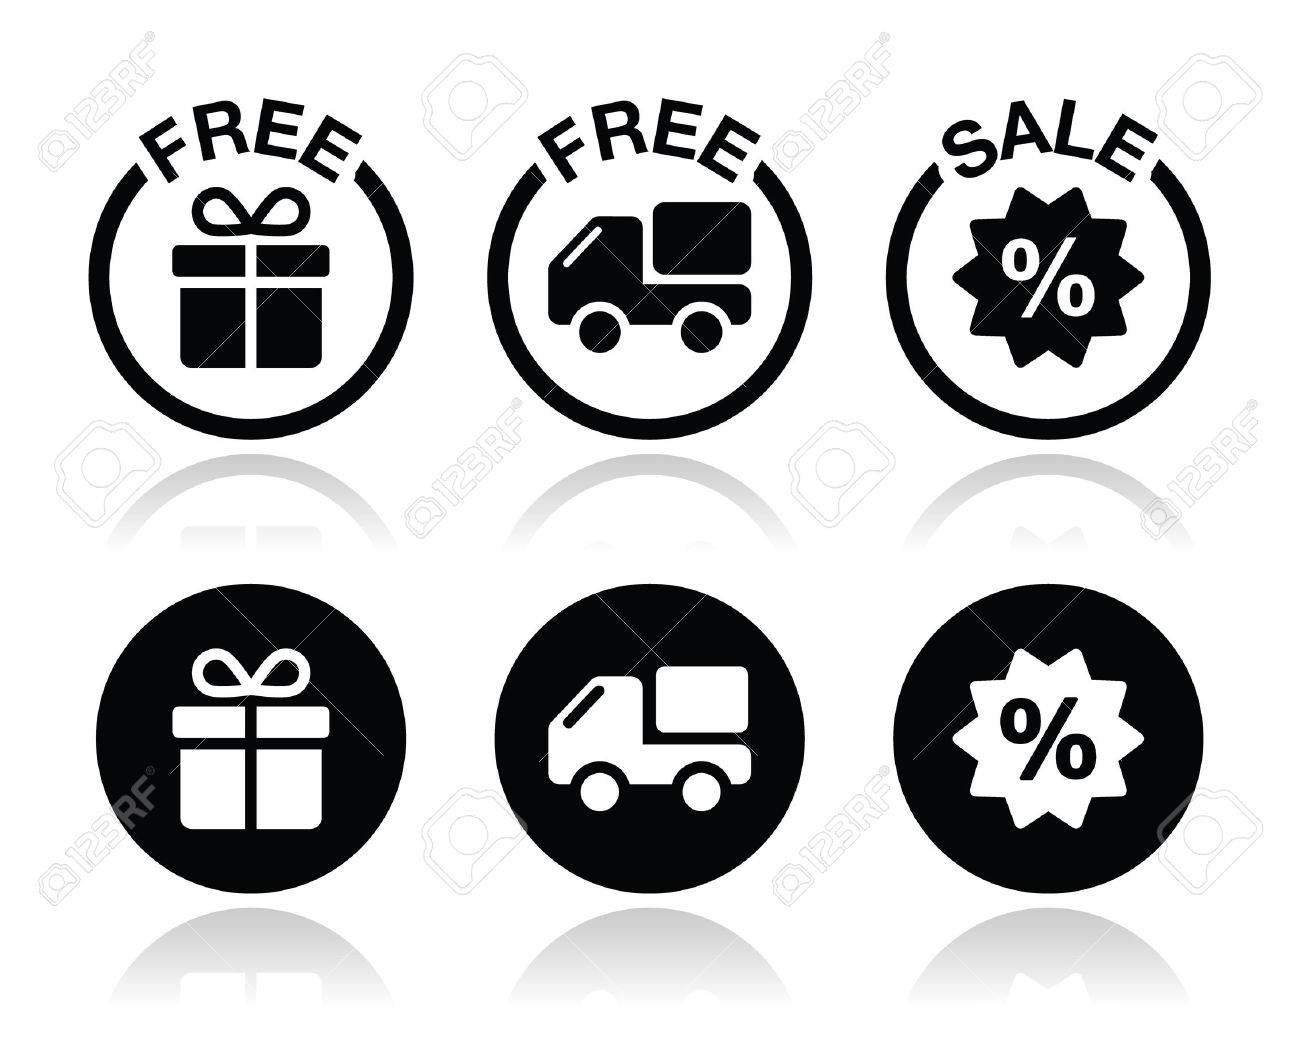 Free gift free delivery sale icons set free gift free delivery sale icons set 23883964 negle Choice Image